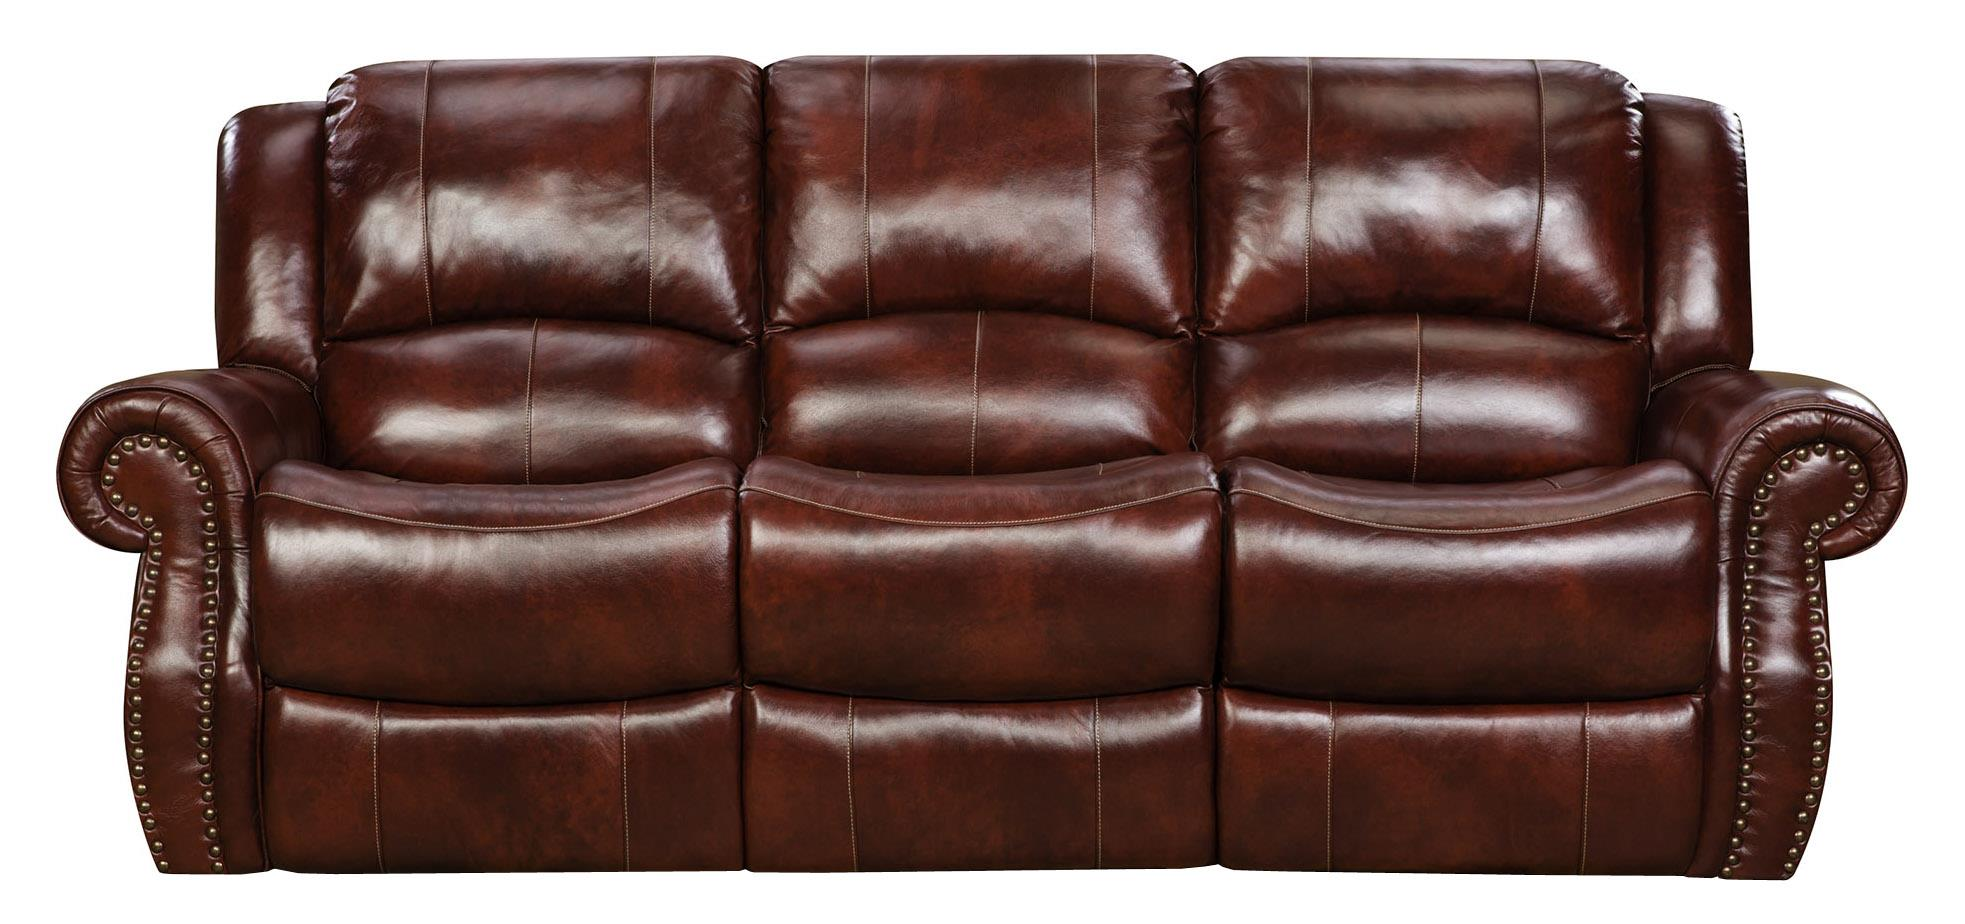 Corinthian alexander 99901 30 alexander leather reclining for Sofa sofa showroom